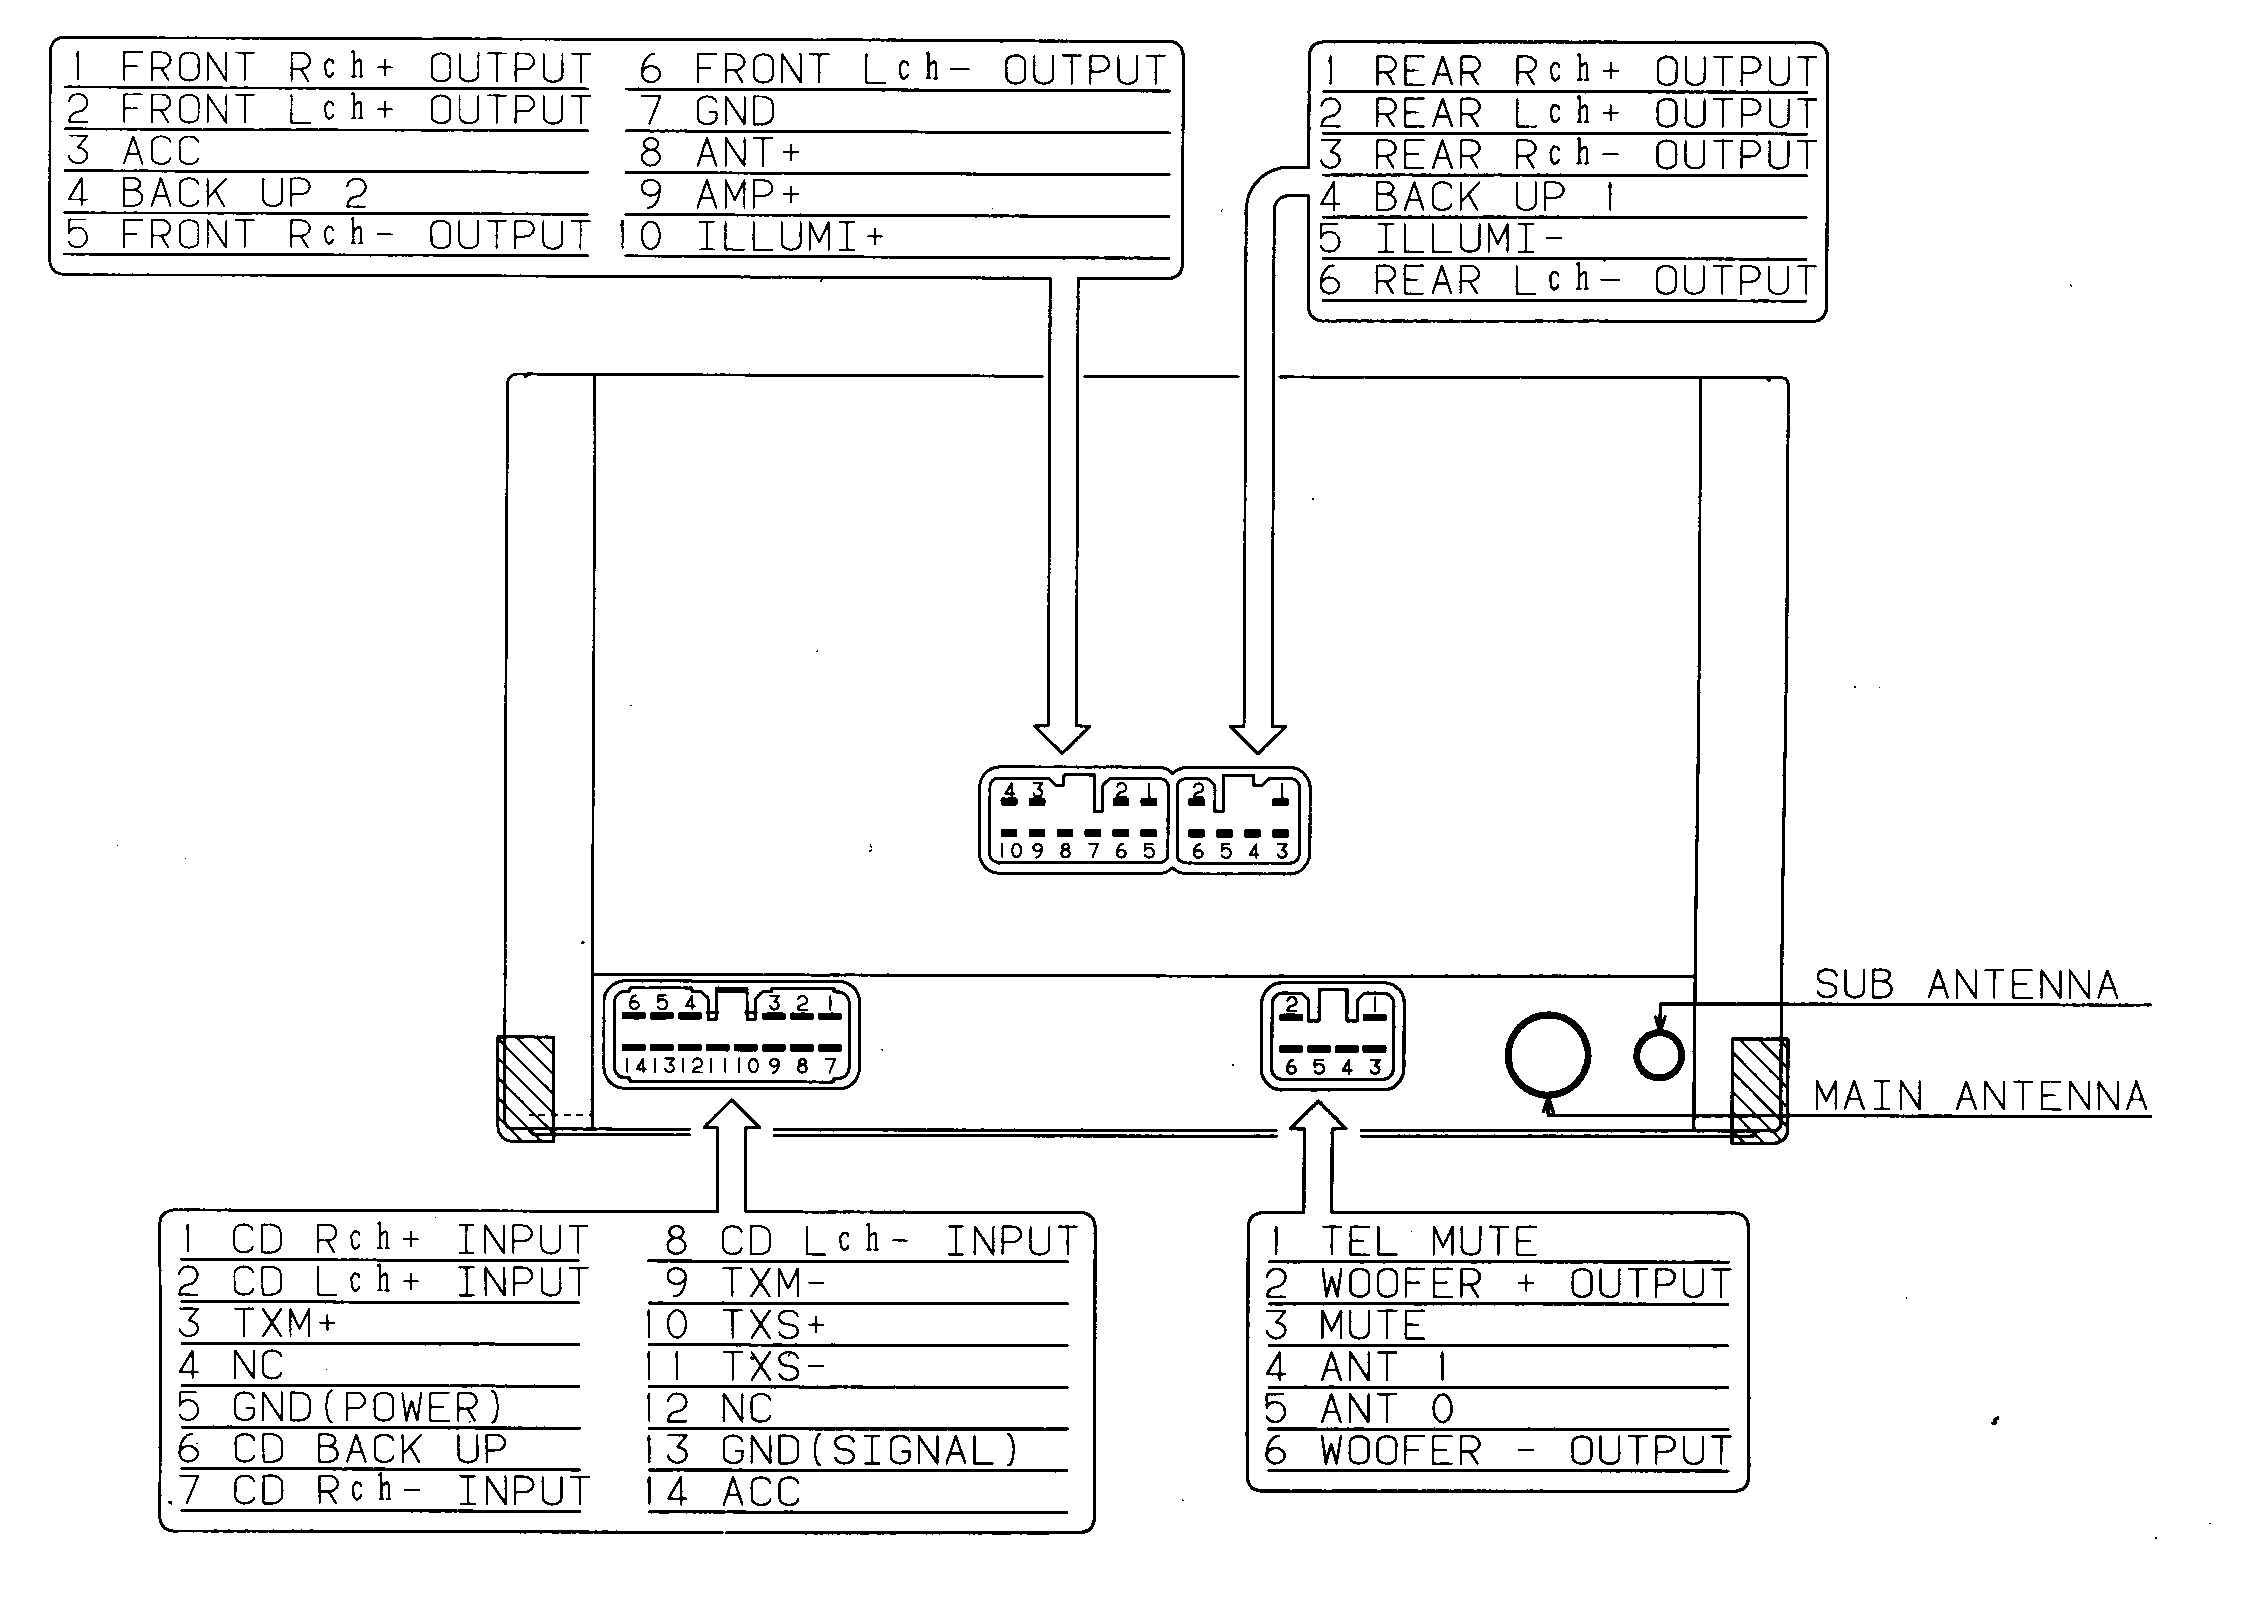 Lexus car stereo wiring diagram harness pinout connector wire daihatsu ecu wiring diagram peterbilt trucks wiring diagram daihatsu ej-ve ecu wiring diagram at readyjetset.co